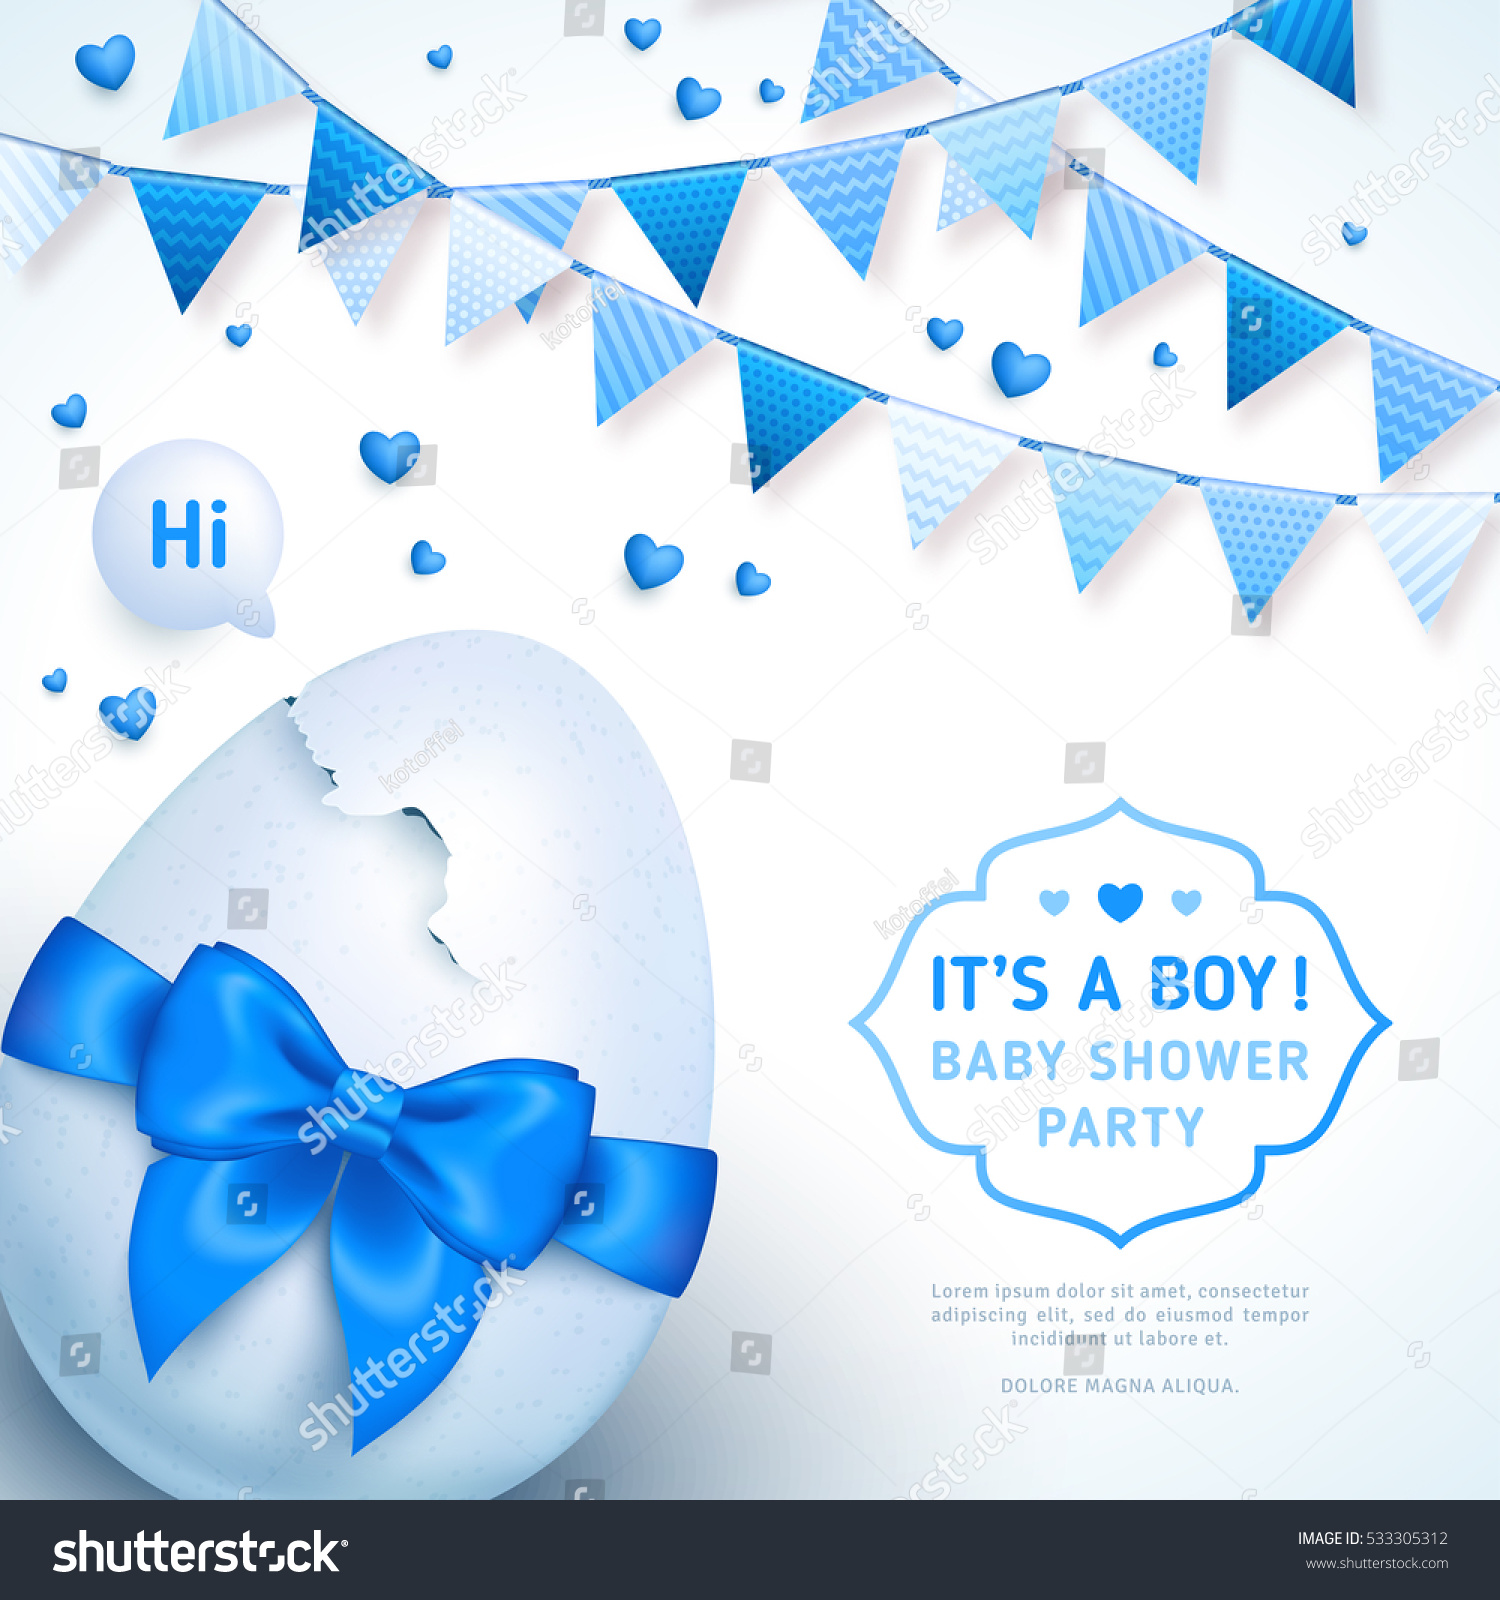 Itu0027s A Boy Baby Shower Concept With Blue Ribbon Bow And Cracked Egg. Vector  Illustration